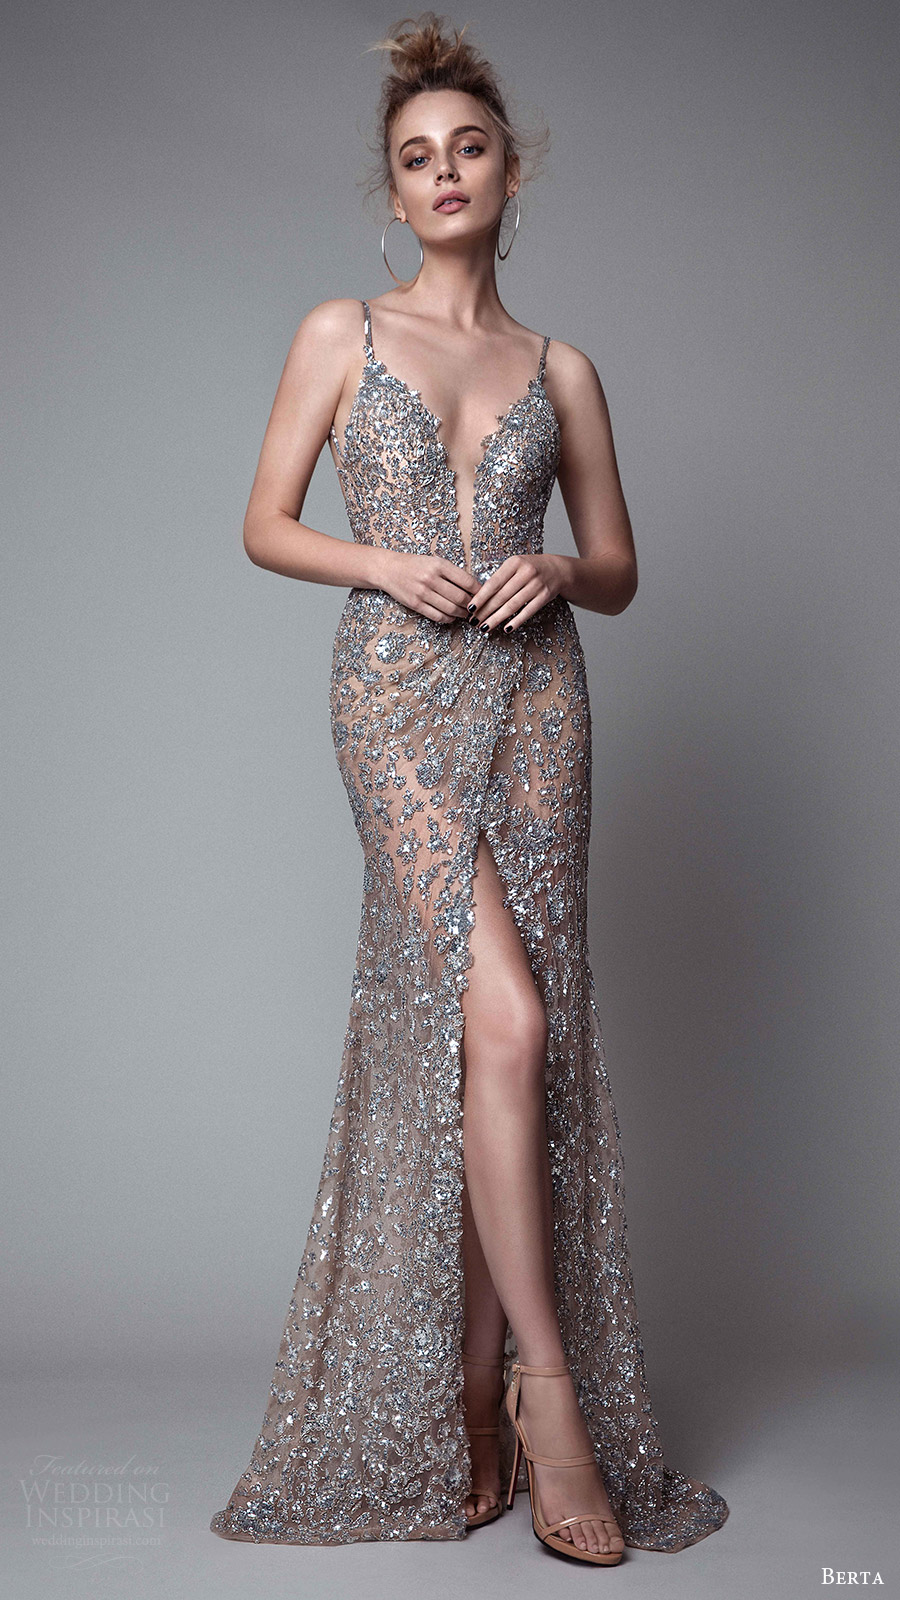 berta rtw fall 2017 (17 29) sleeveless deep v neck sheath metallic evening dress slit skirt spaghetti straps mv